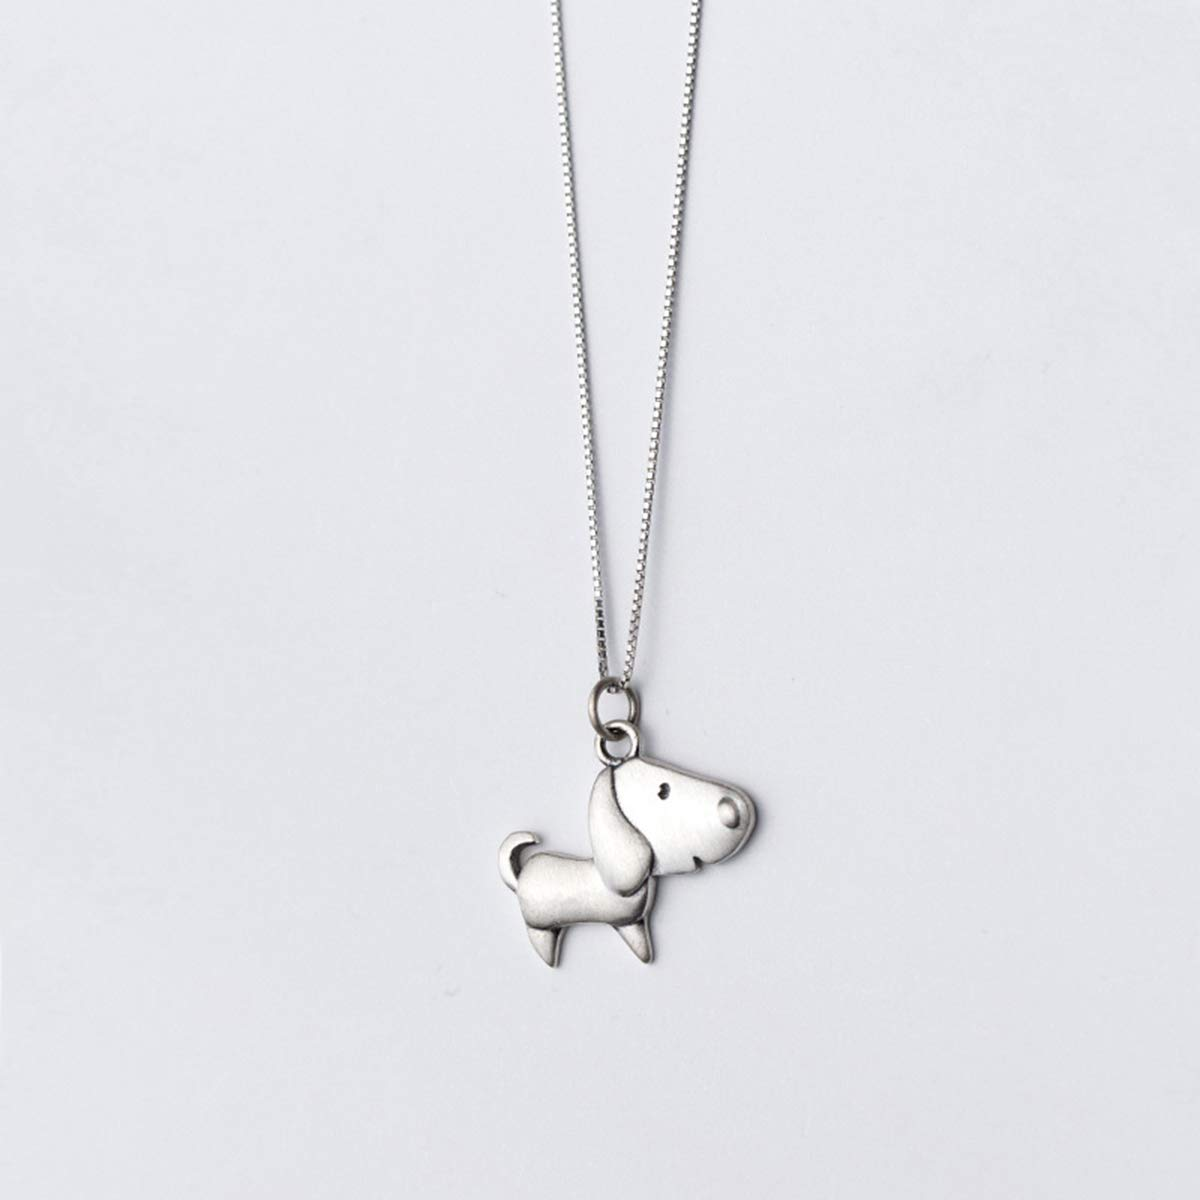 Onlyfo Cute 925 Silver Dog Puppy Pendant Necklace with Box Chain,Short Dog Necklace for Women (Silver)